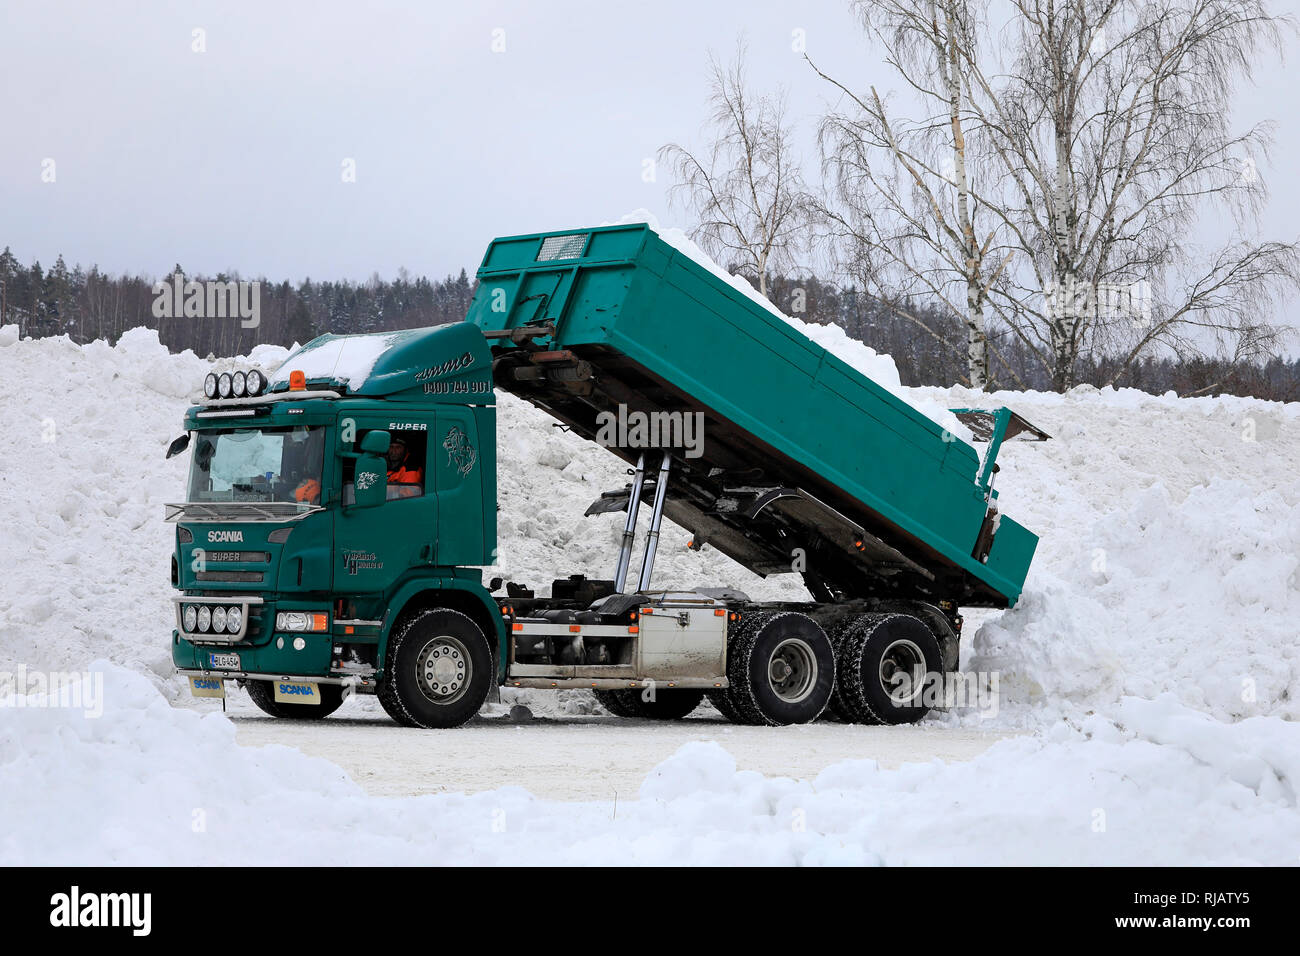 Salo, Finland - February 2, 2019: Green Scania P420 tipper truck unloads snow cleared from streets and parking lots at municipal snow dumping area. - Stock Image